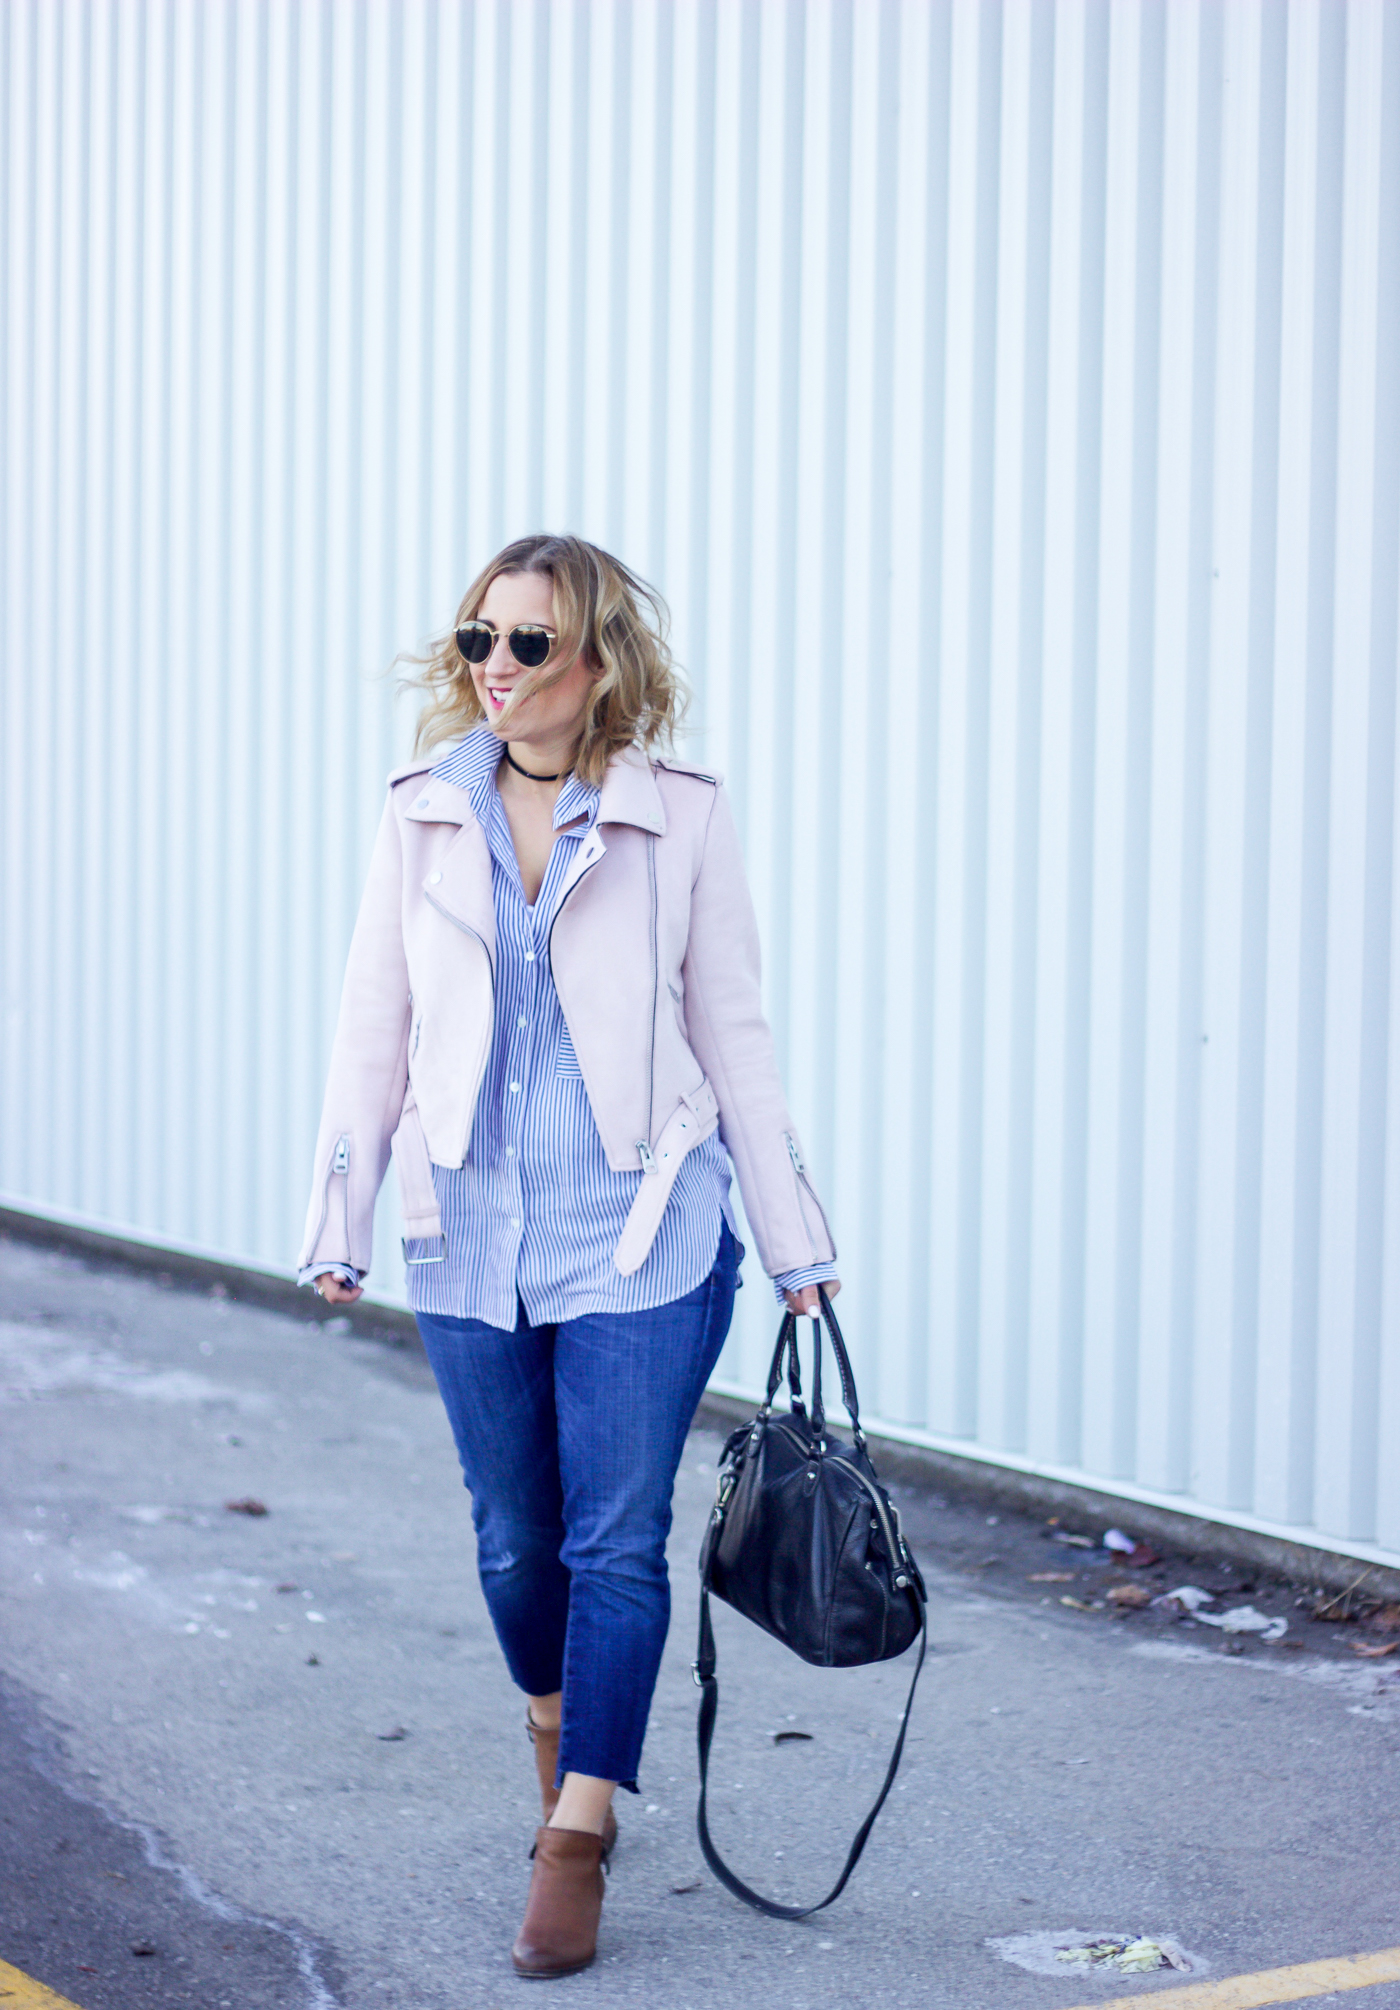 Toronto fashion, beauty and lifestyle blogger, Jackie Goldhar of Something About That is wearing a pink moto jacket from Zara and Current Elliott jeans for spring